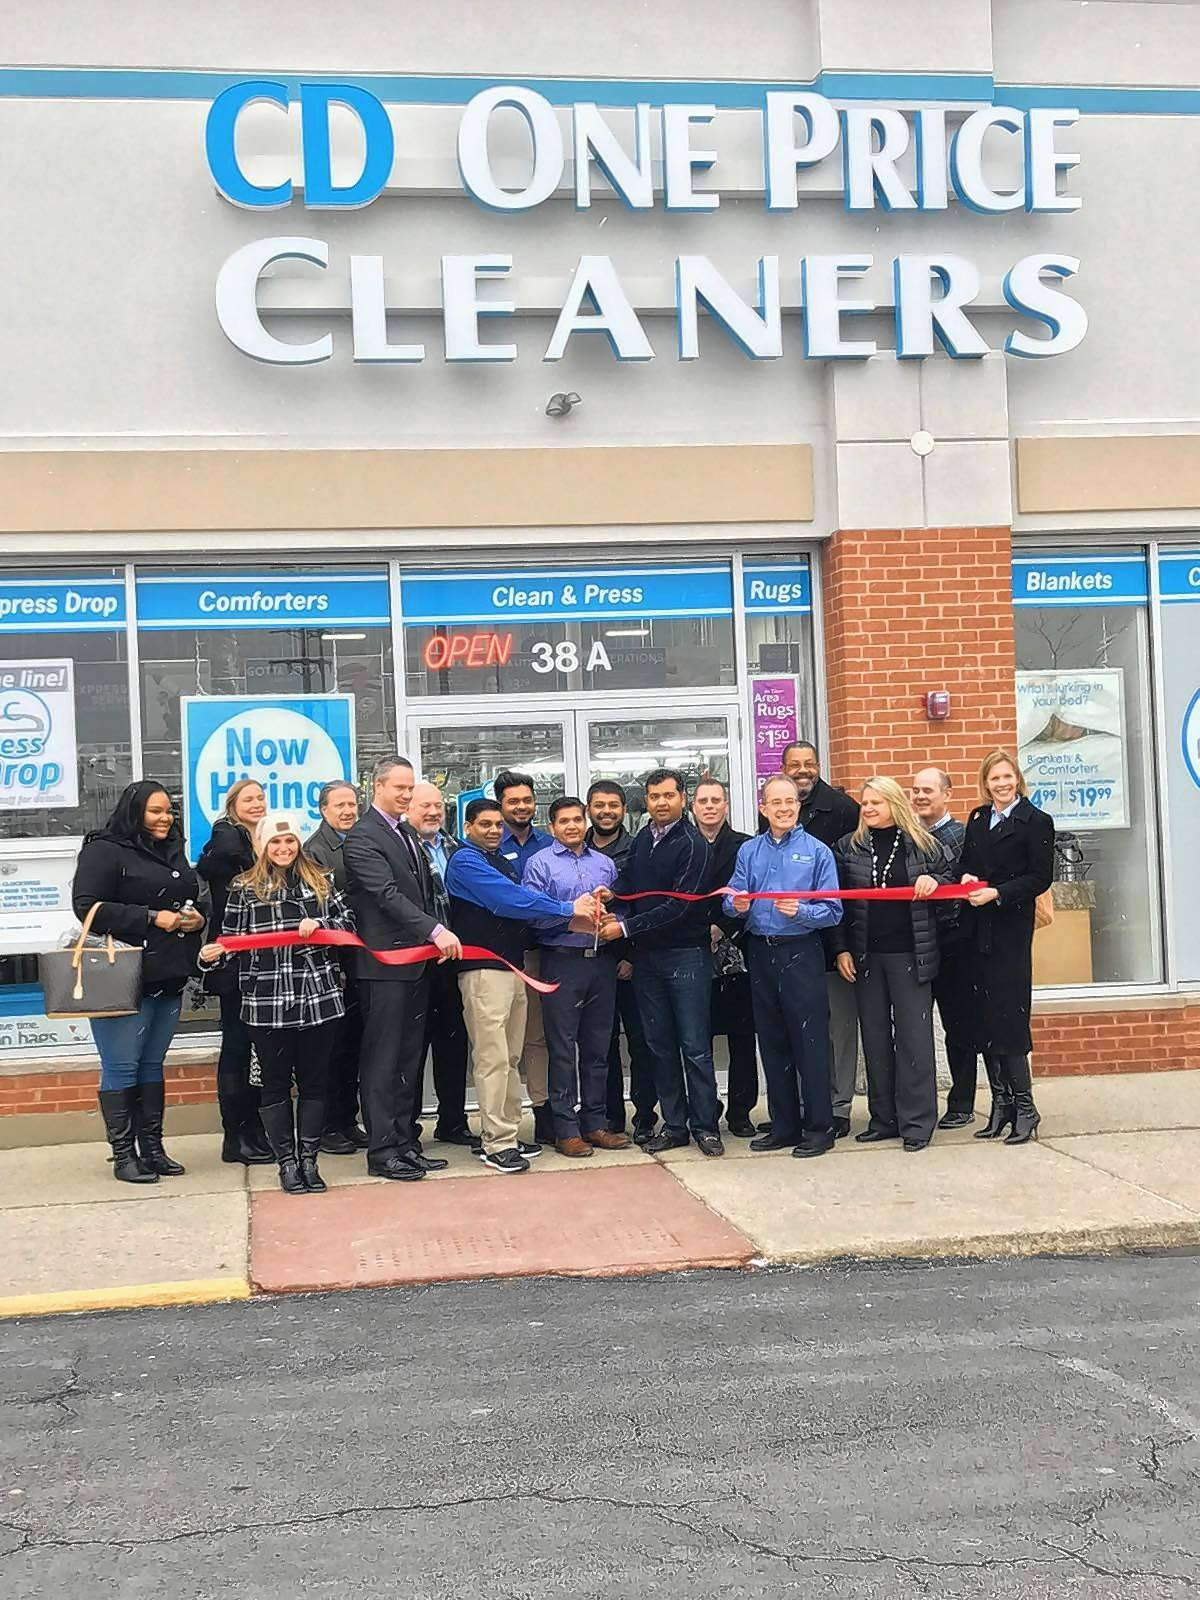 Owner J.D. Patel, at center holding giant scissors, had a ribbon cutting on his new CD One Price Cleaners franchise in Schaumburg. He held a grand opening last weekend.